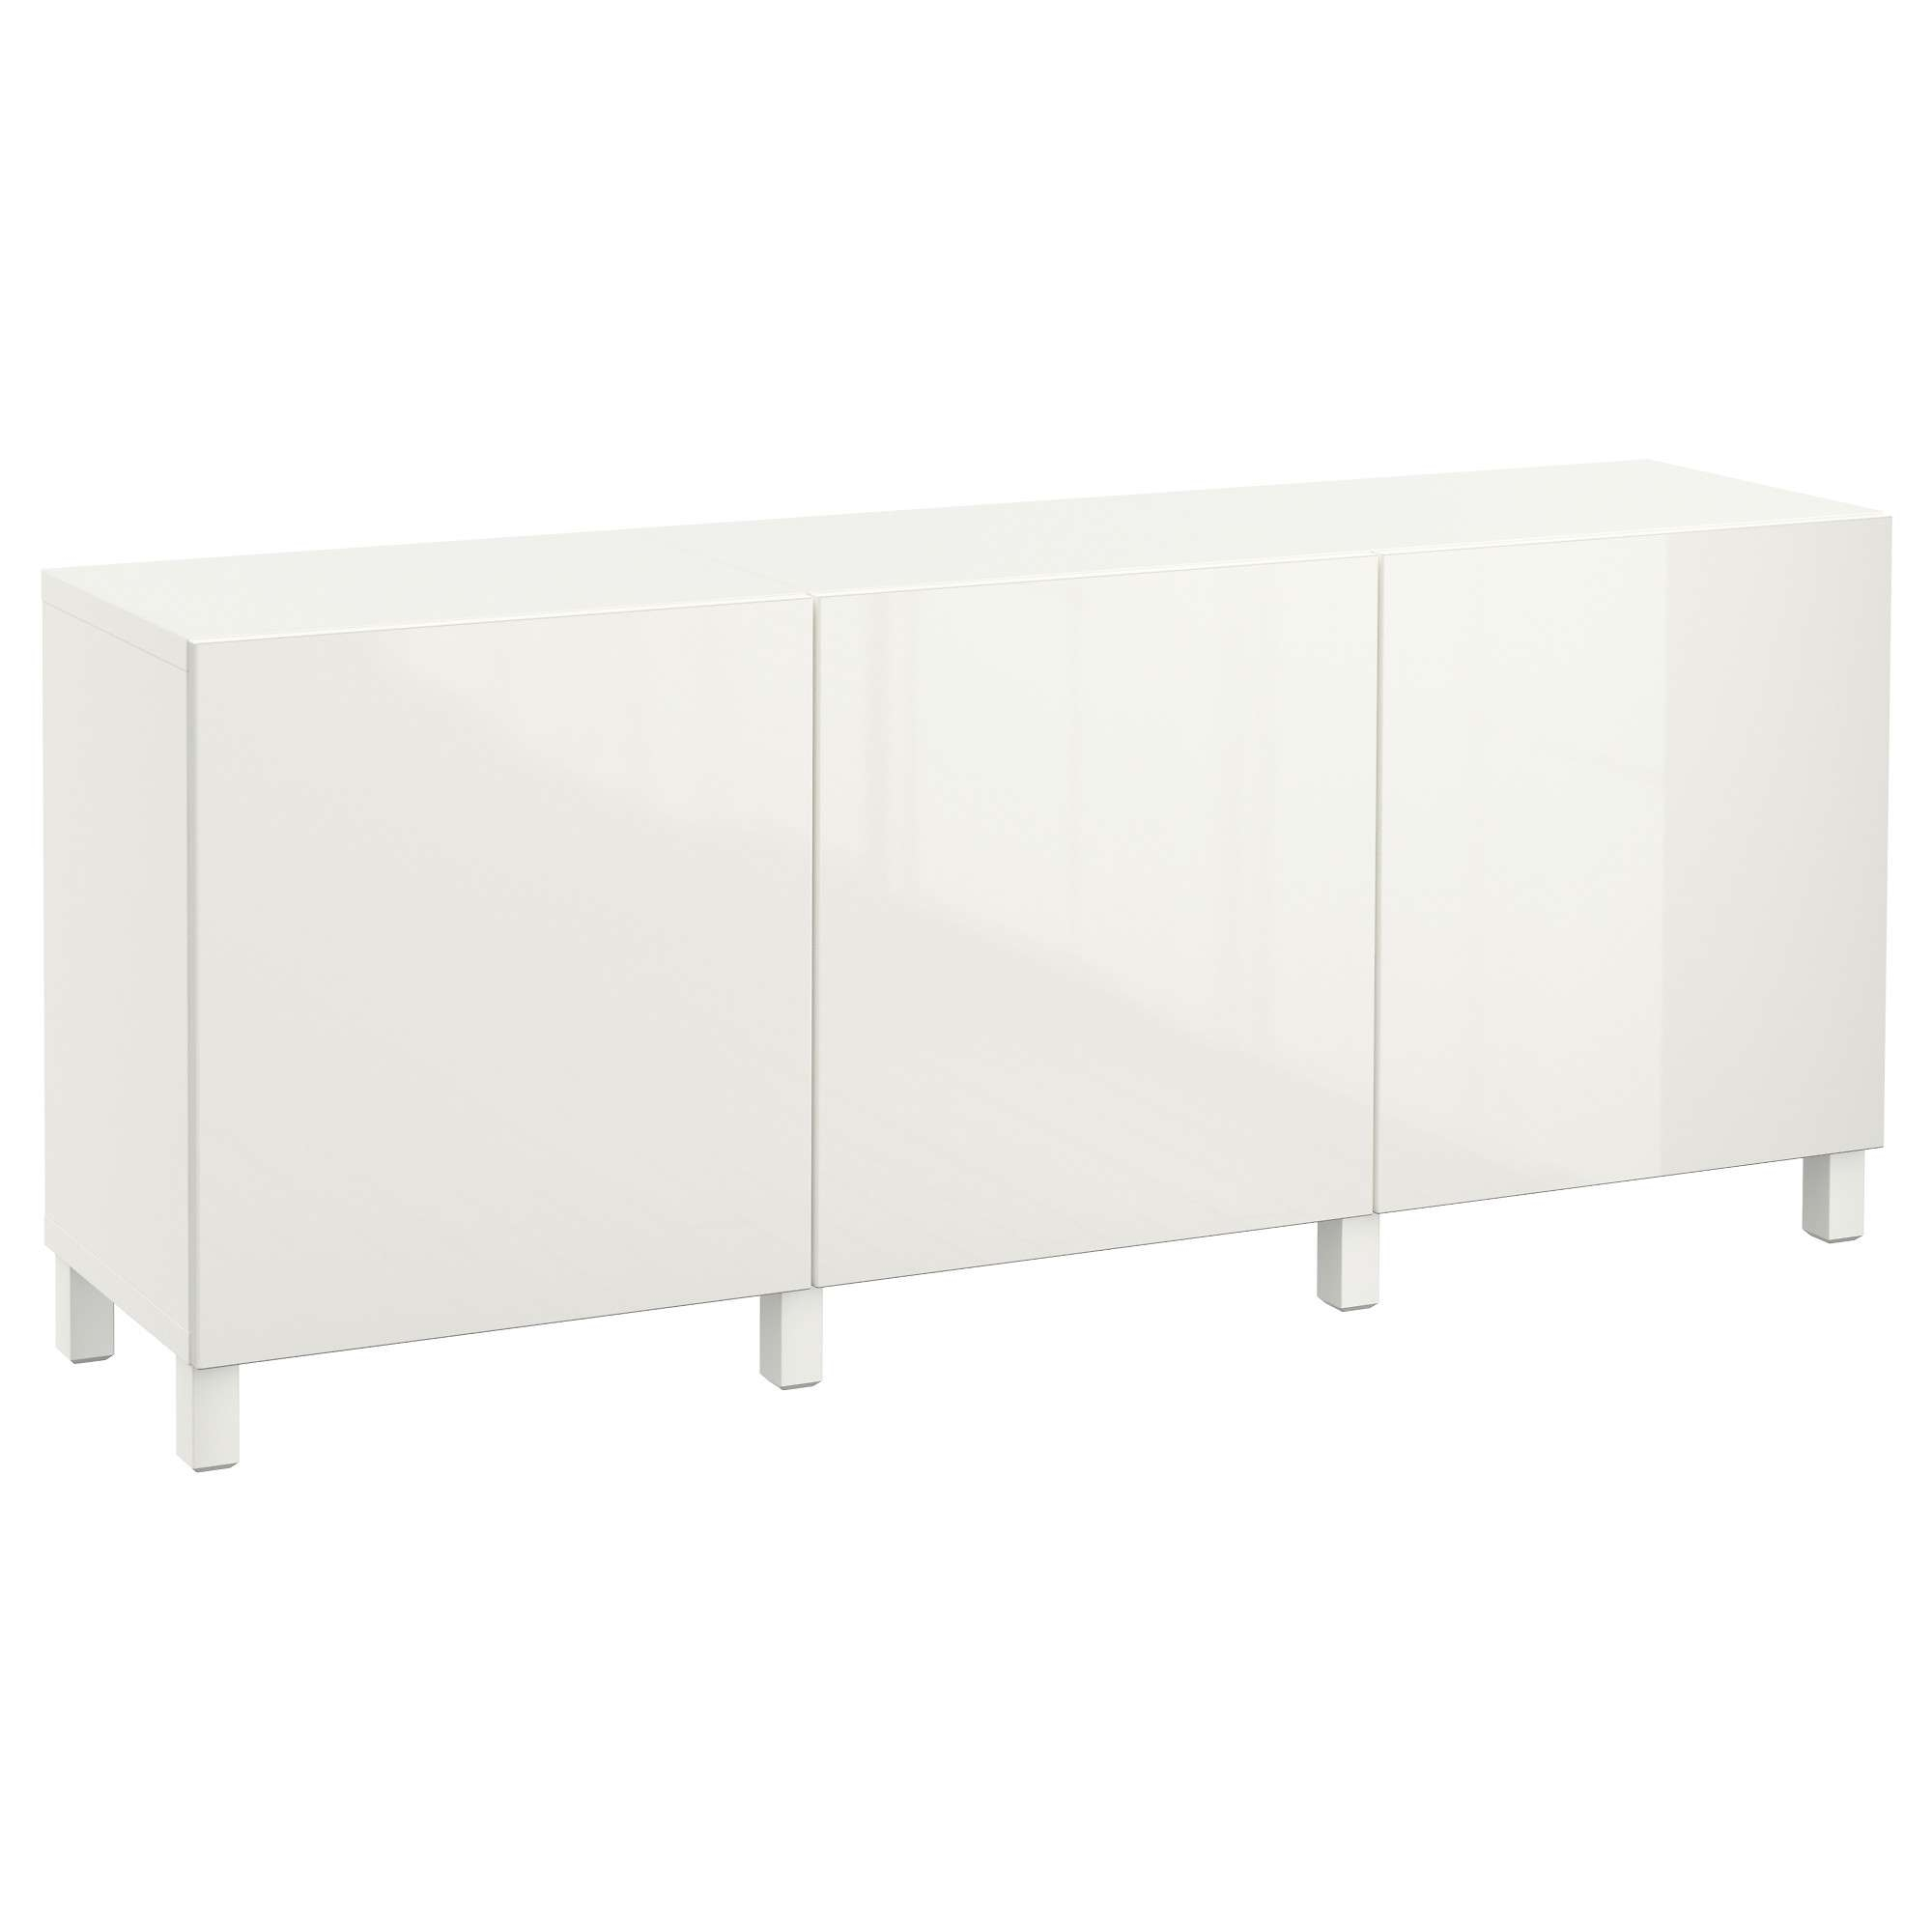 Bestå Storage Combination With Doors – White/selsviken High Gloss Within High White Gloss Sideboards (View 17 of 20)